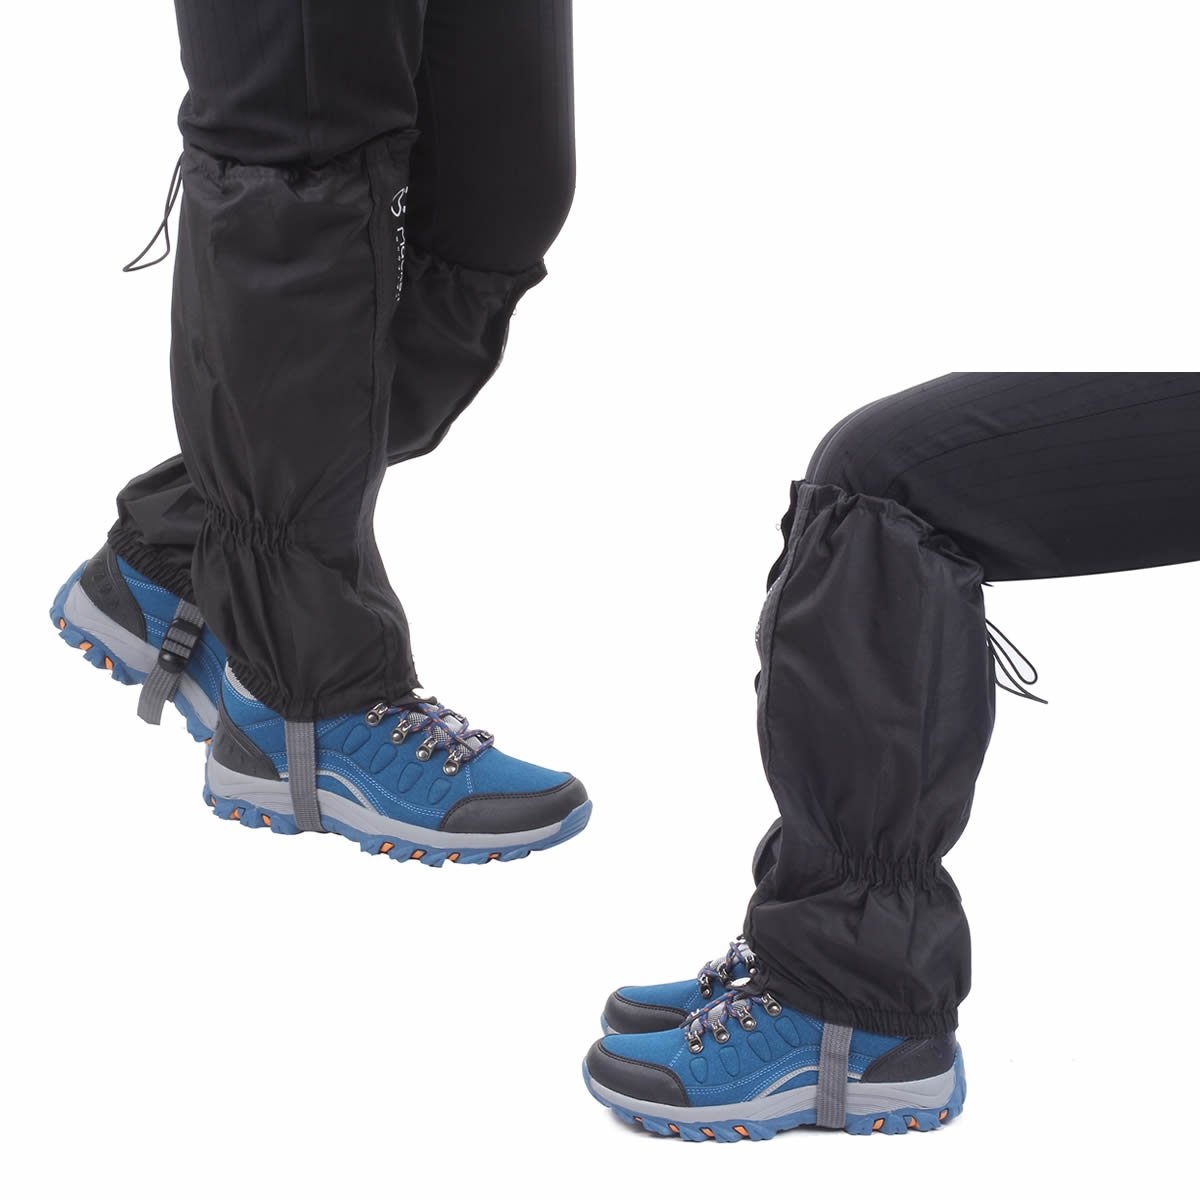 Macks.i Outdoor Unisex Waterproof Camping Hiking Gaiters High Leg Cover 1pair with a Free Shoe Bag by Macks.i (Image #7)